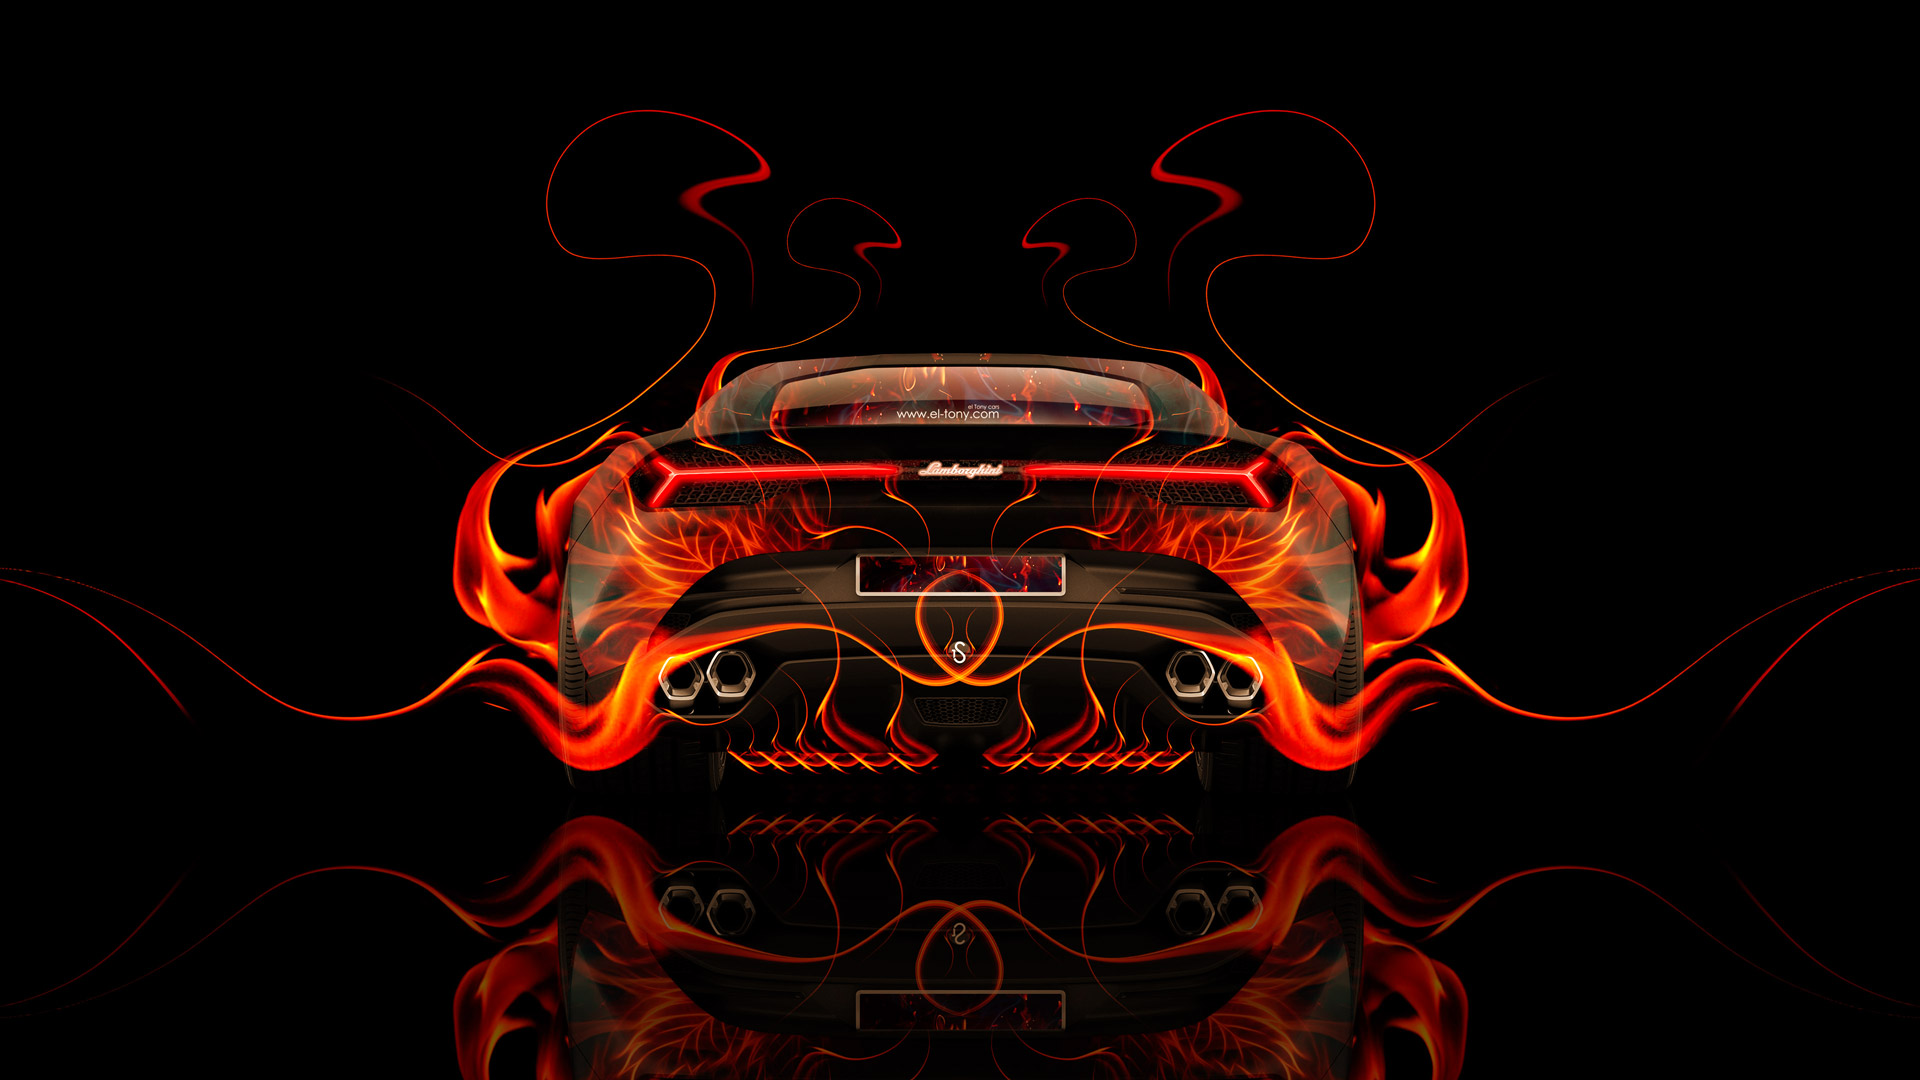 Attrayant Lamborghini Asterion Back Fire Abstract Car 2014